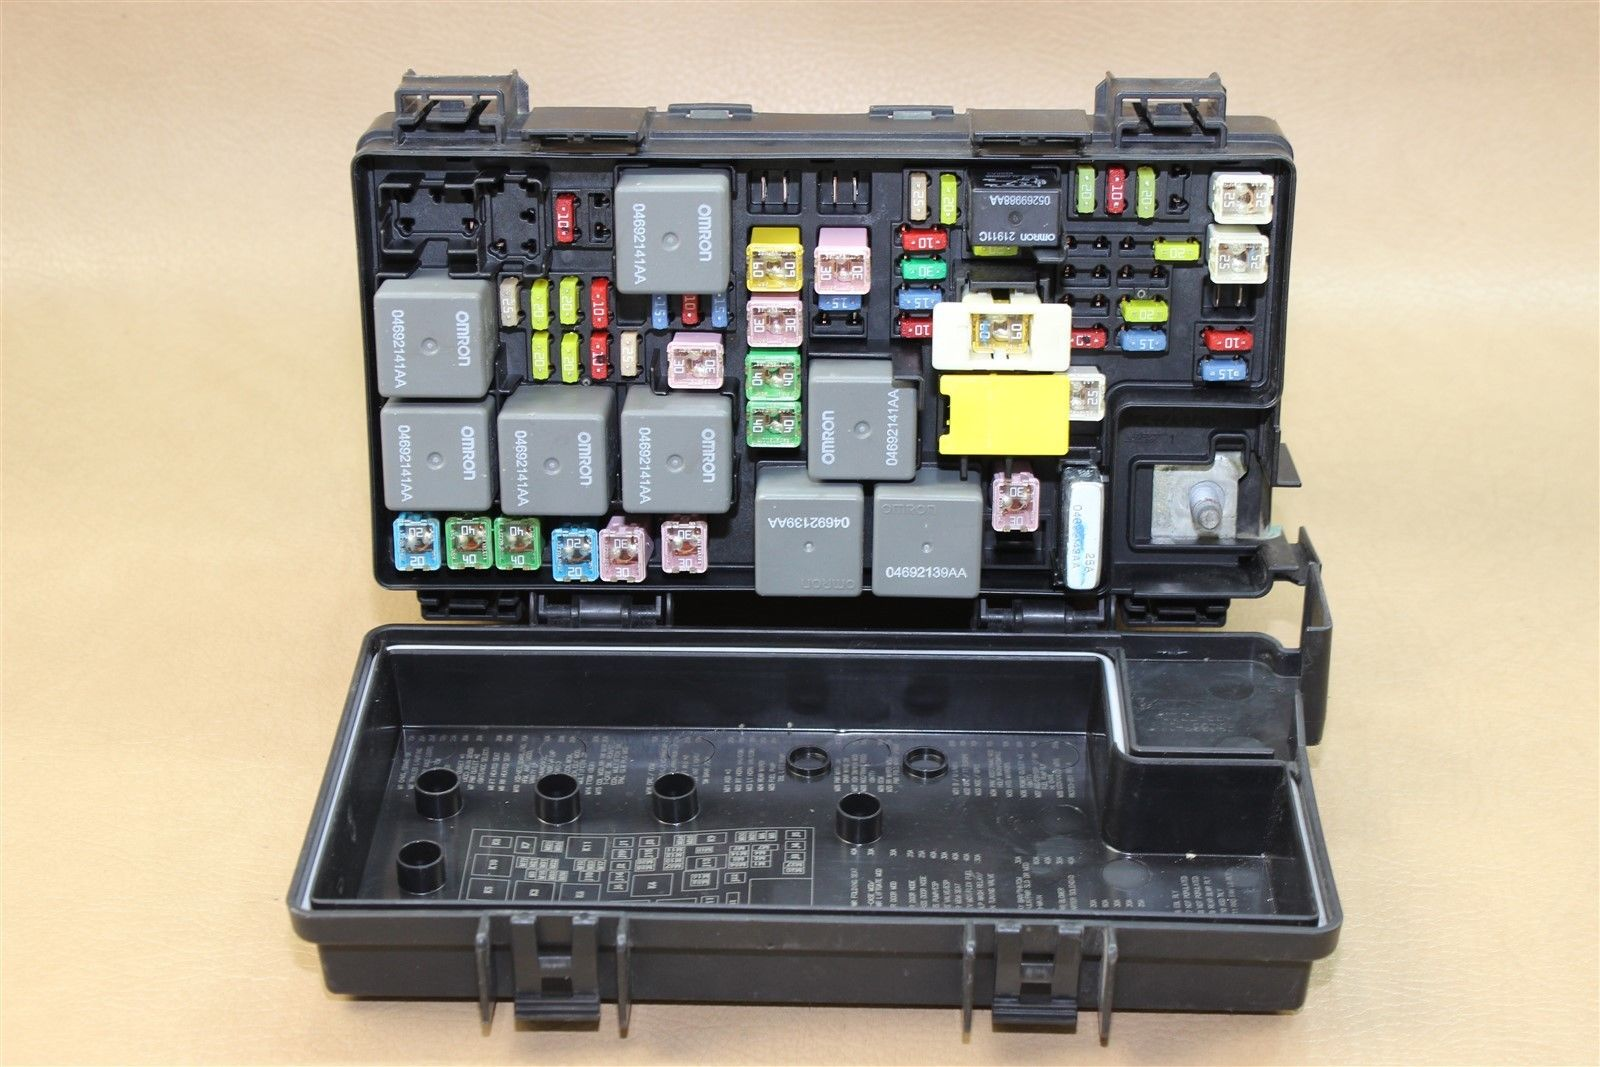 REMAN 09 JEEP WRANGLER 3.8L TIPM TEMIC INTEGRATED FUSE BOX MODULE  04692289AC OEM Does Not